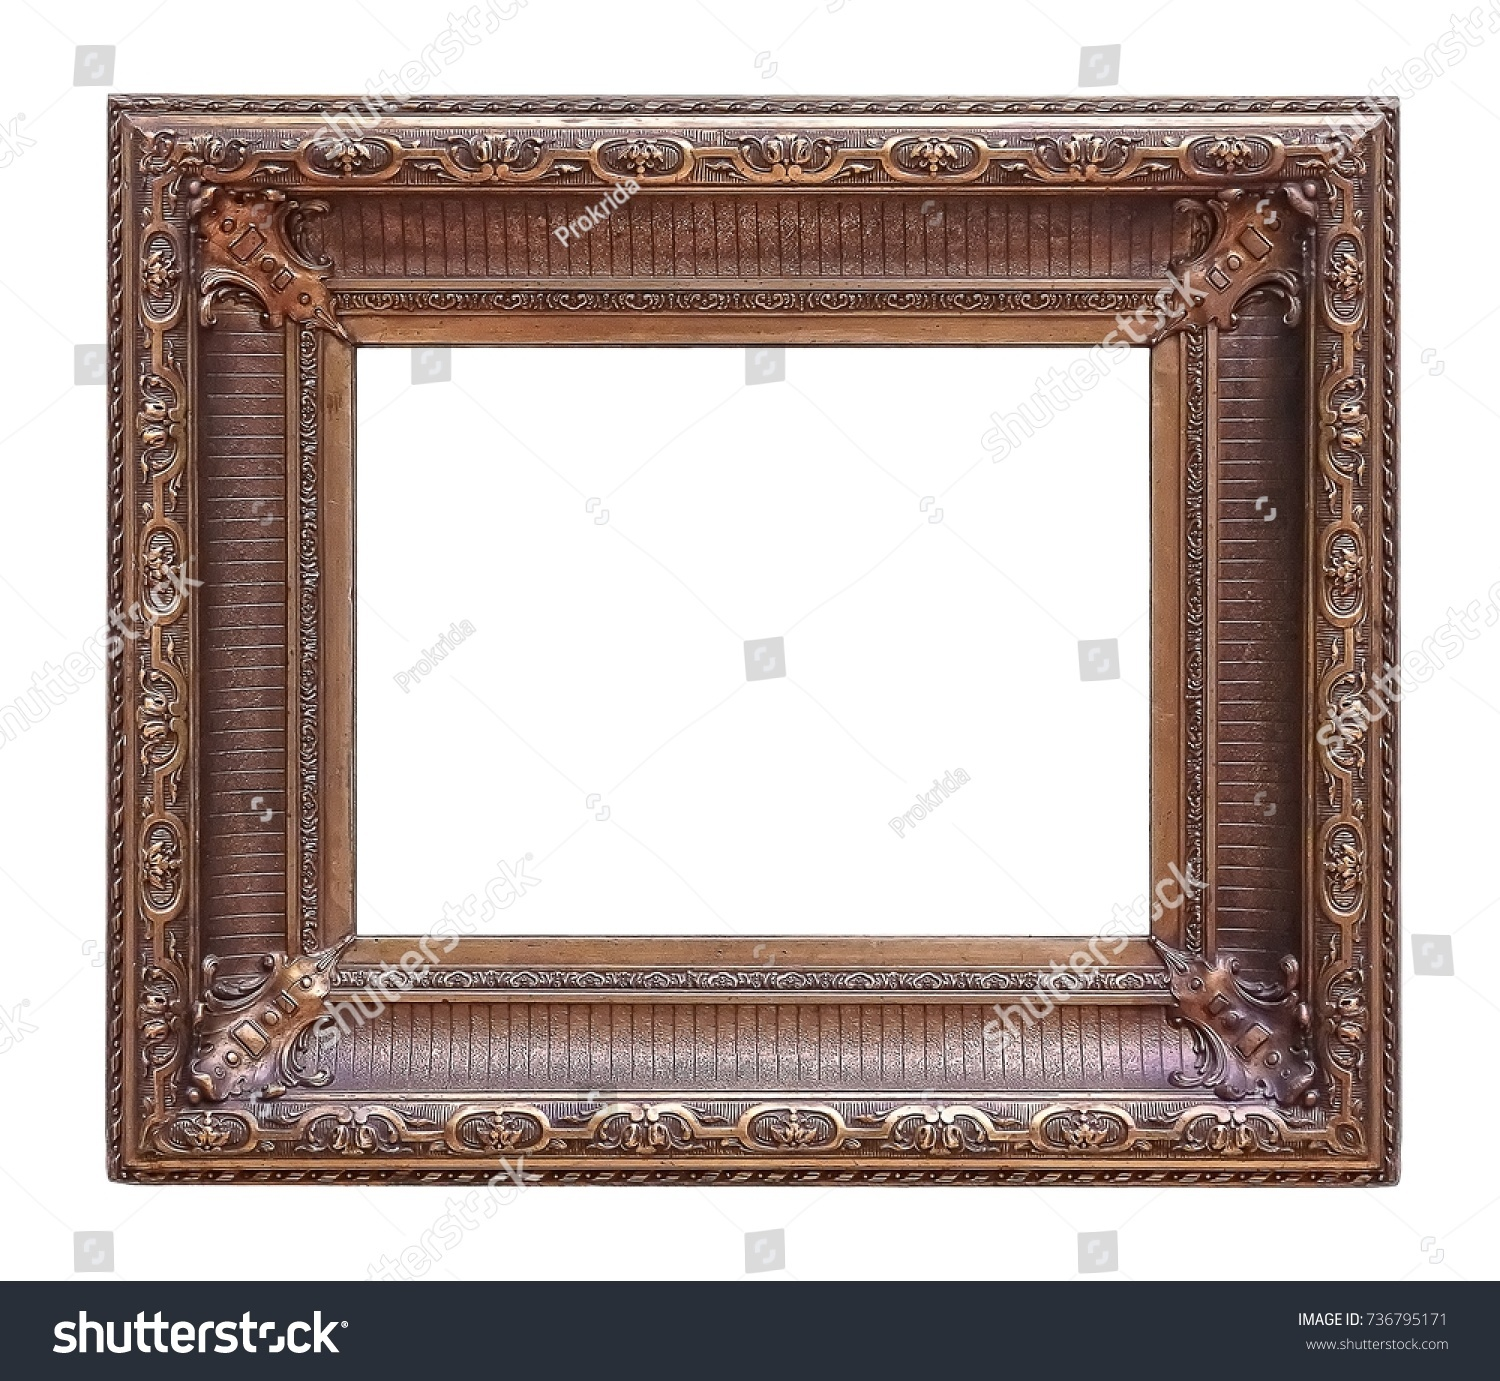 Wooden frame for paintings, mirrors or photos | EZ Canvas